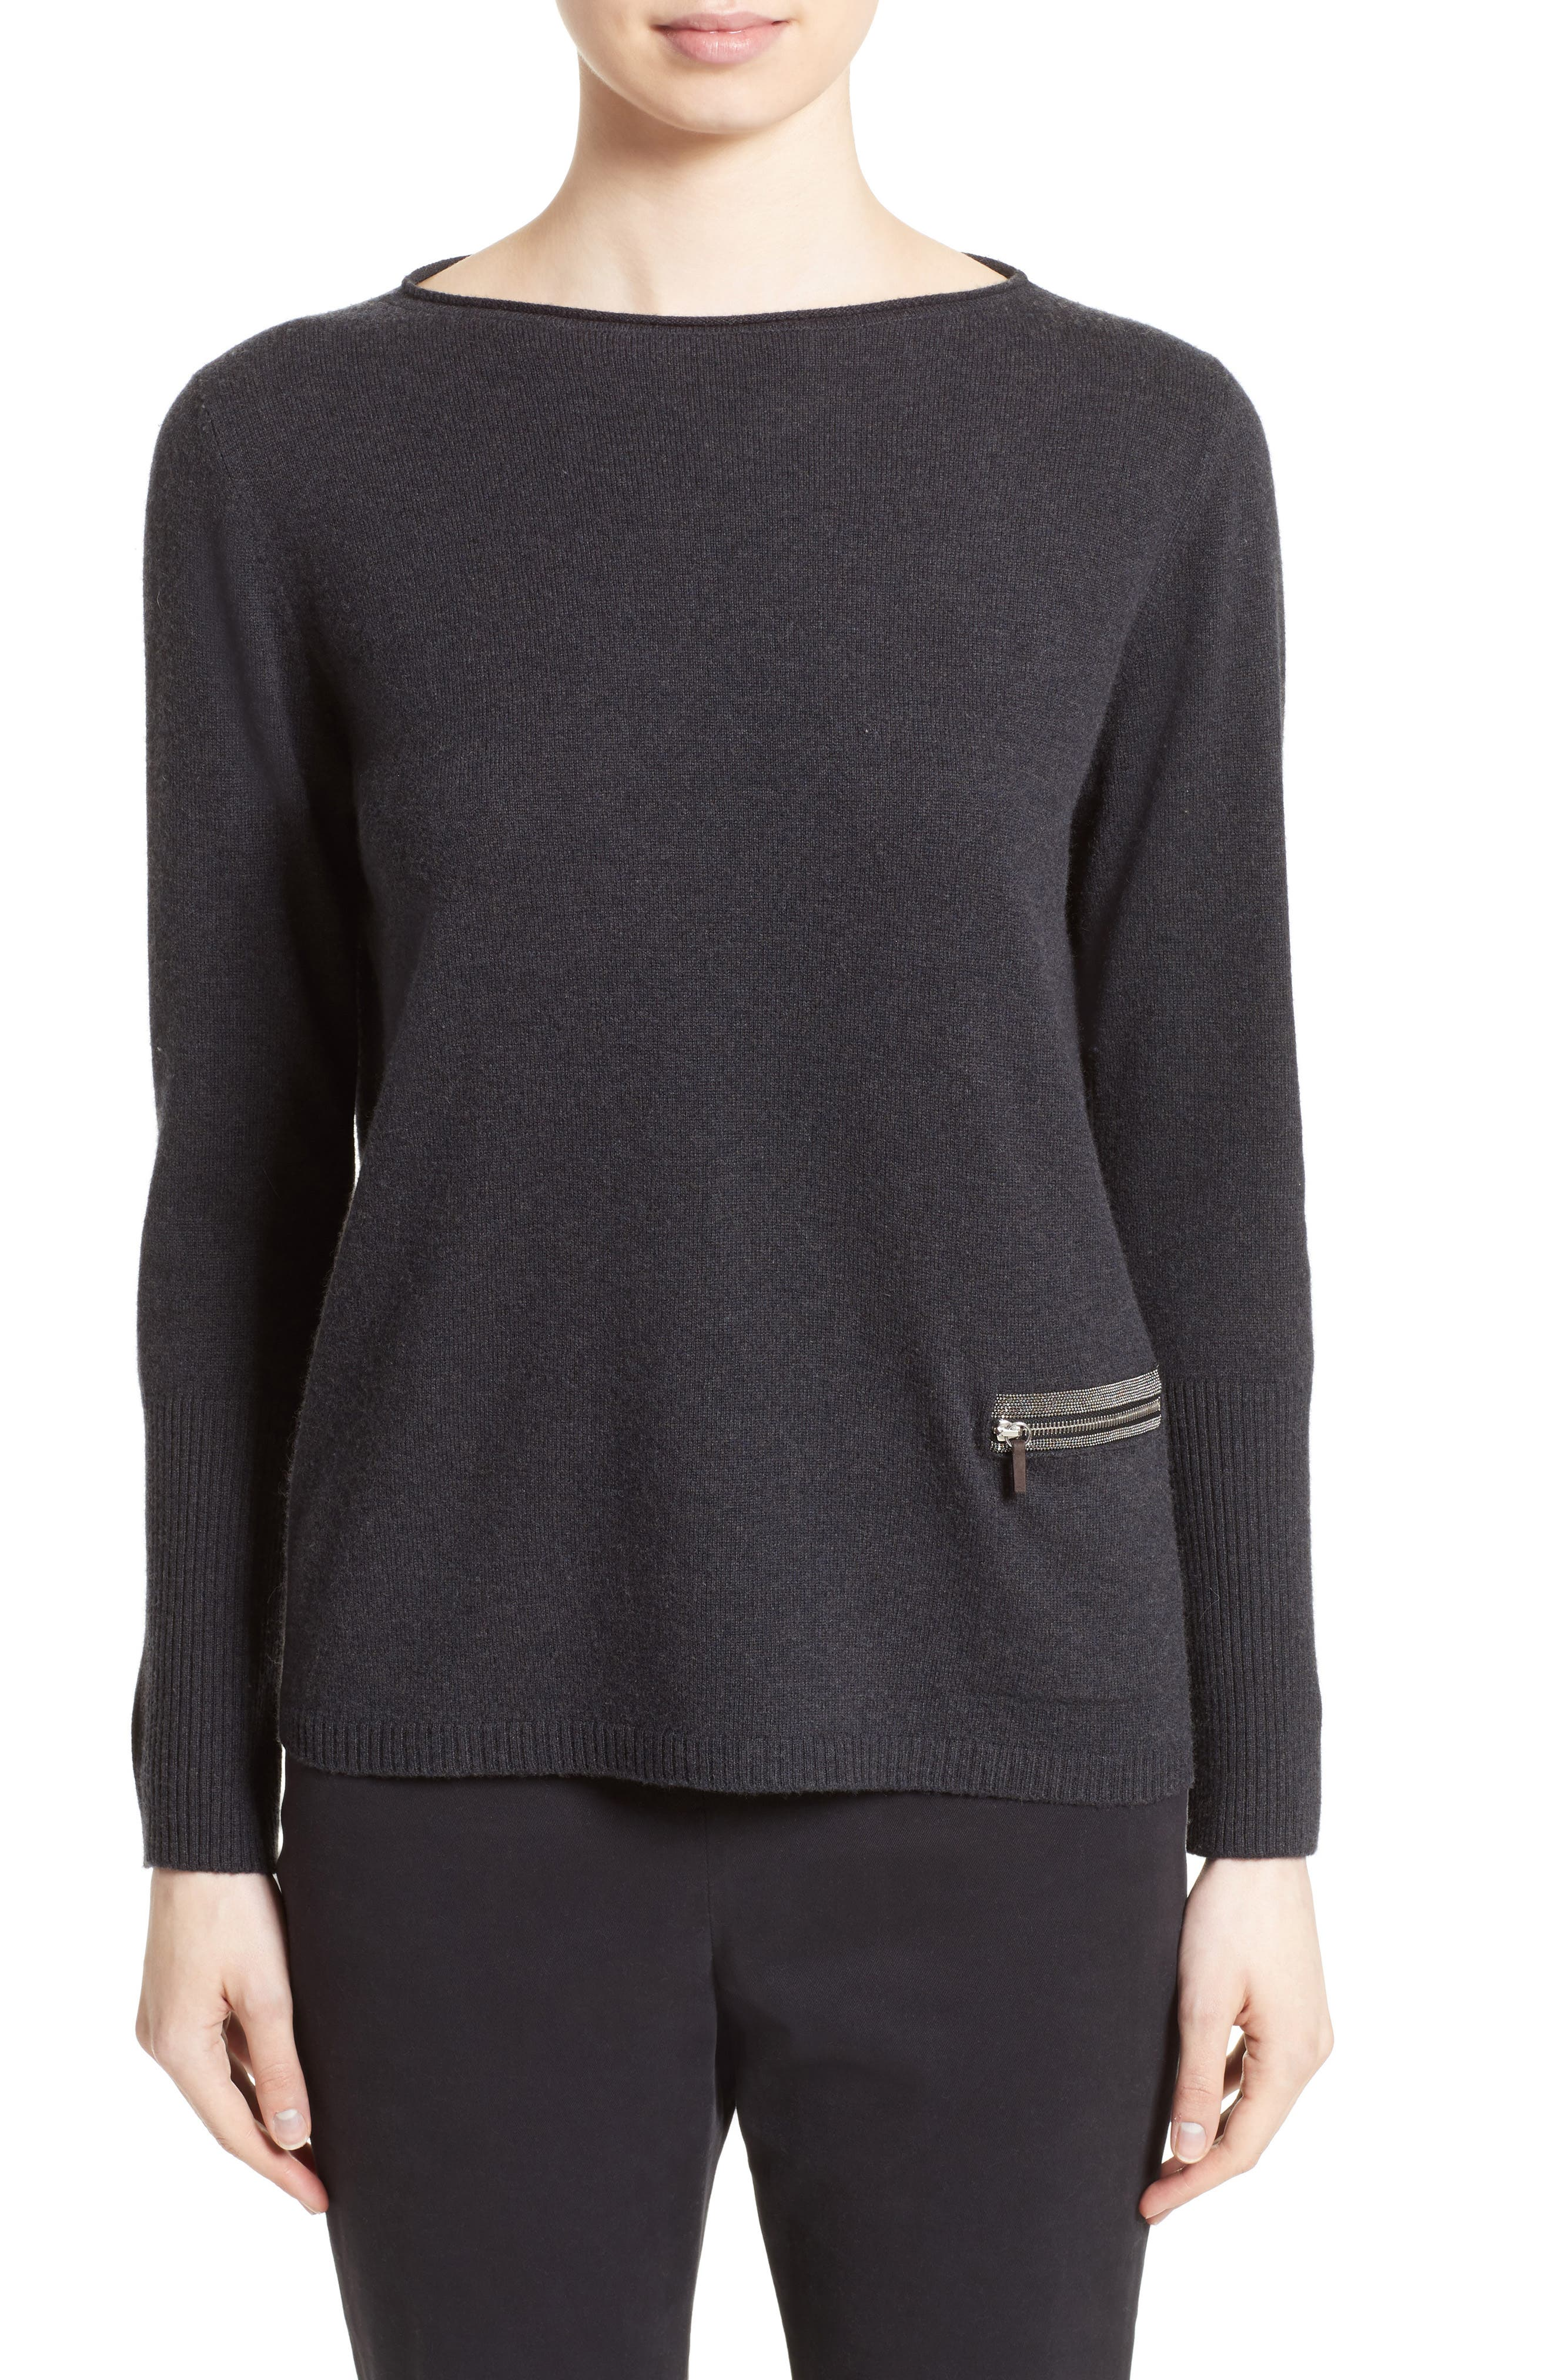 Wool, Silk & Cashmere Boatneck Sweater,                             Main thumbnail 1, color,                             Charcoal Navy